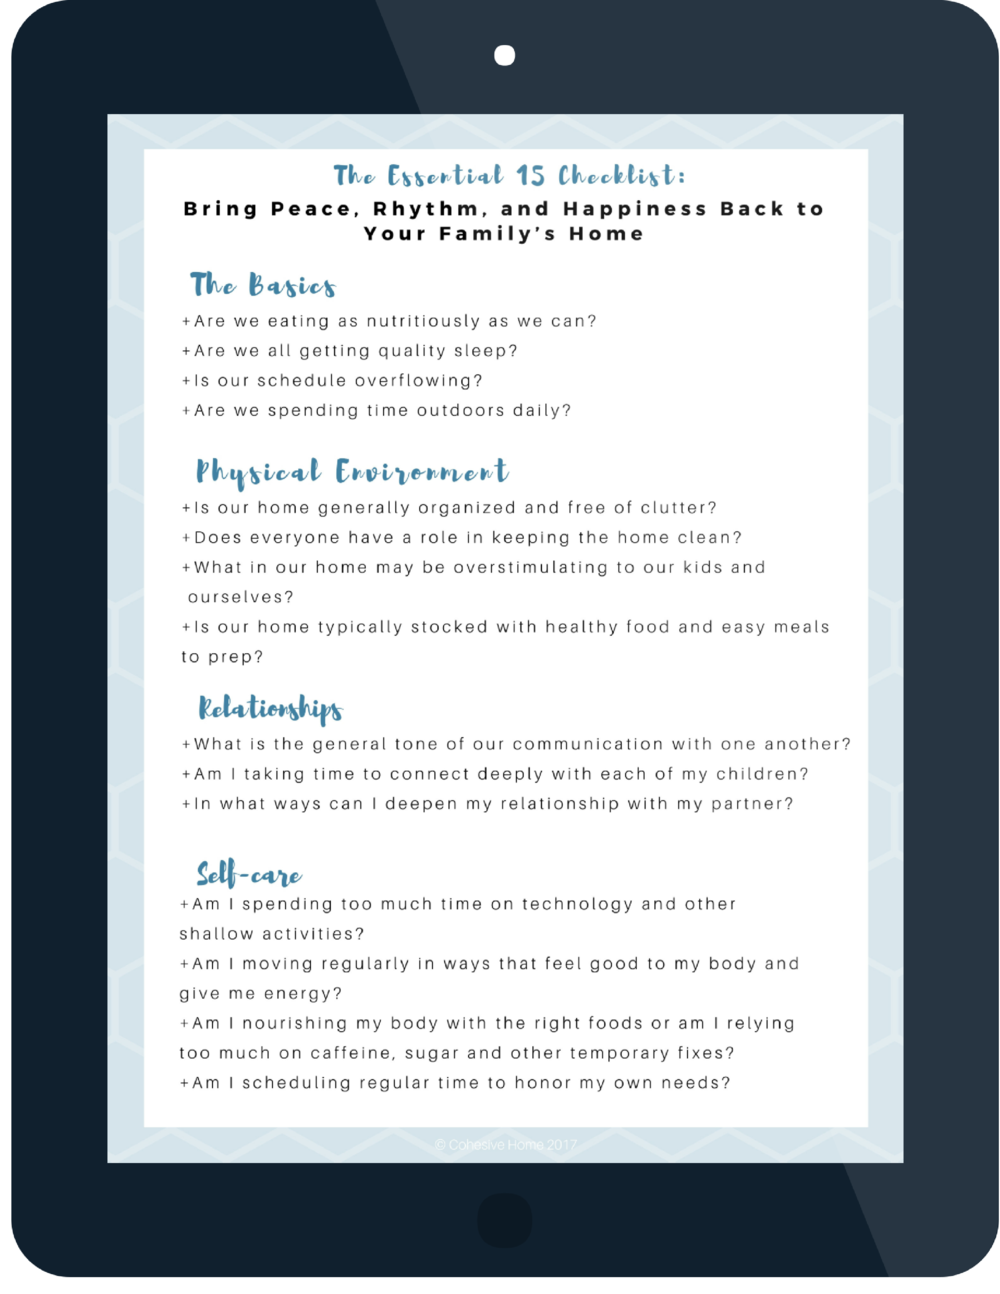 The Essential 15 Checklist Download